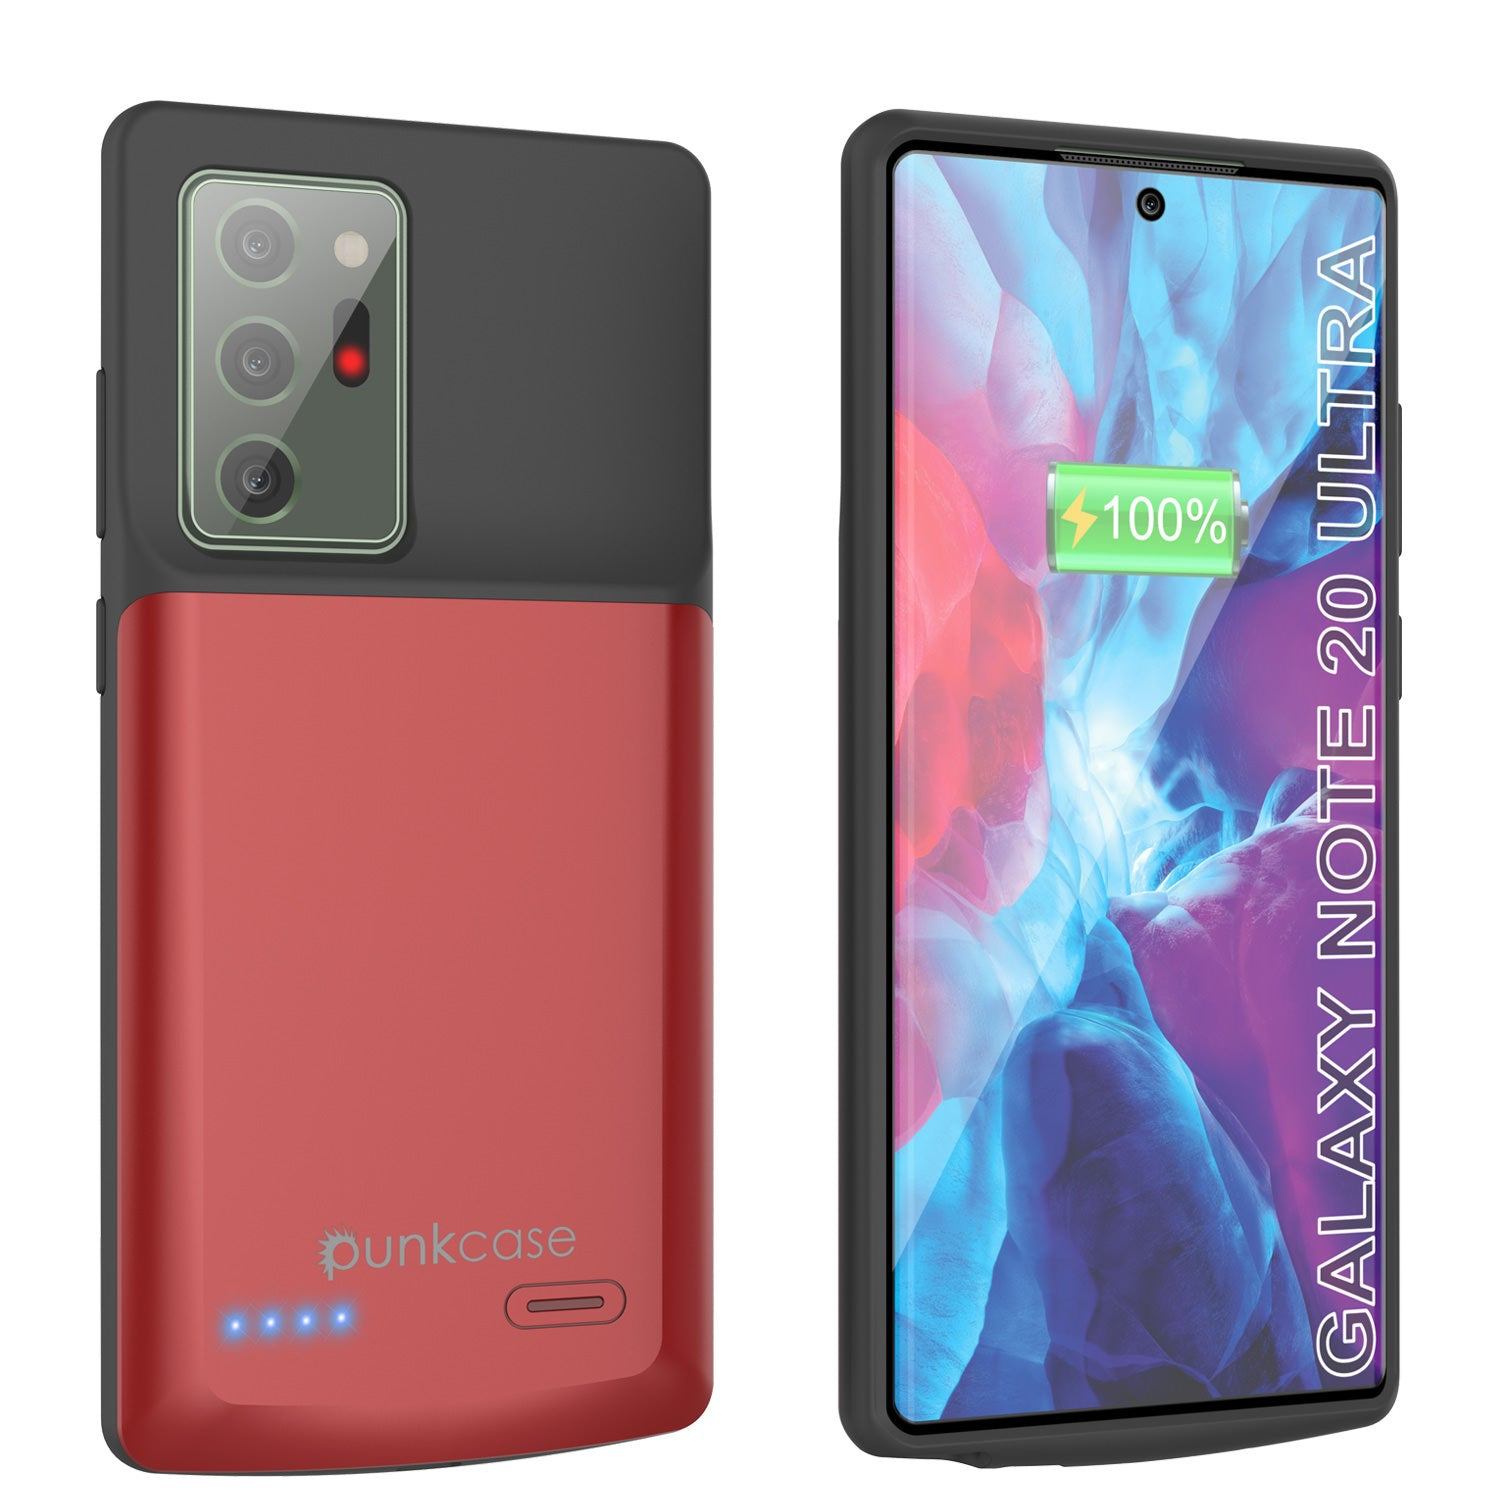 Galaxy Note 20 Ultra 6000mAH Battery Charger Slim Case [Red]